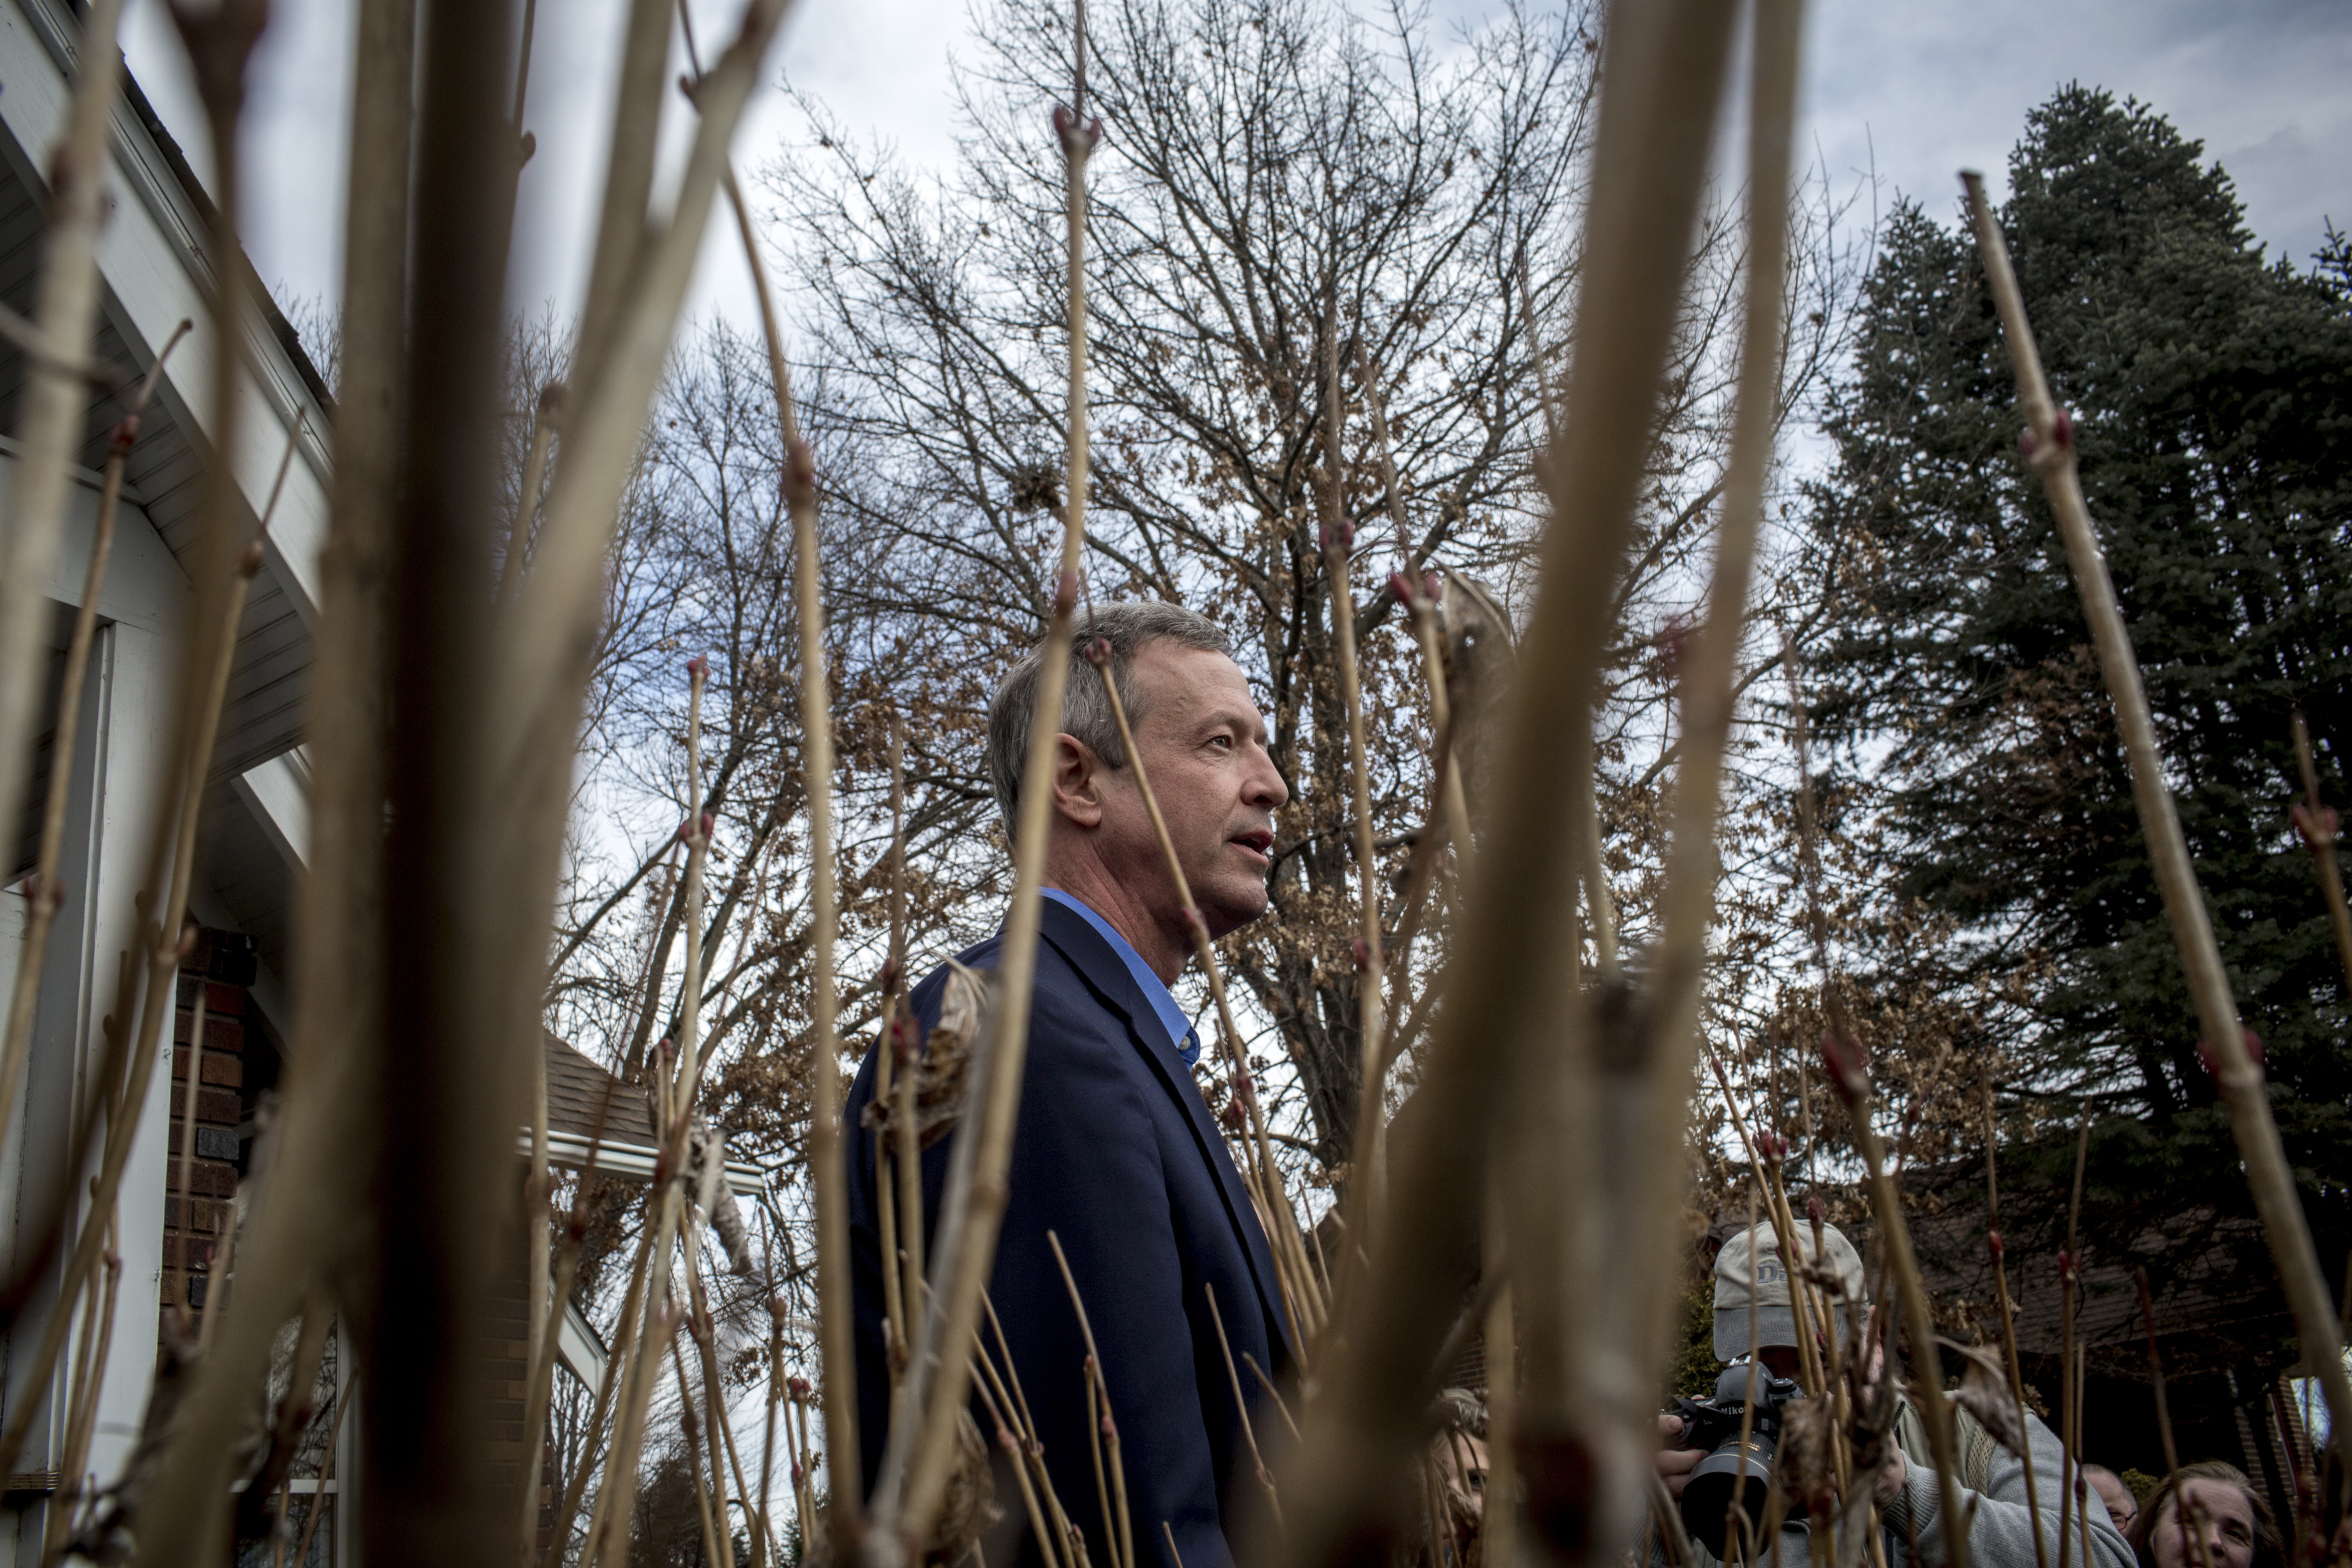 Martin O'Malley holds a campaign rally at a supporter's home in Johnston, Iowa on Jan. 31, 2016.